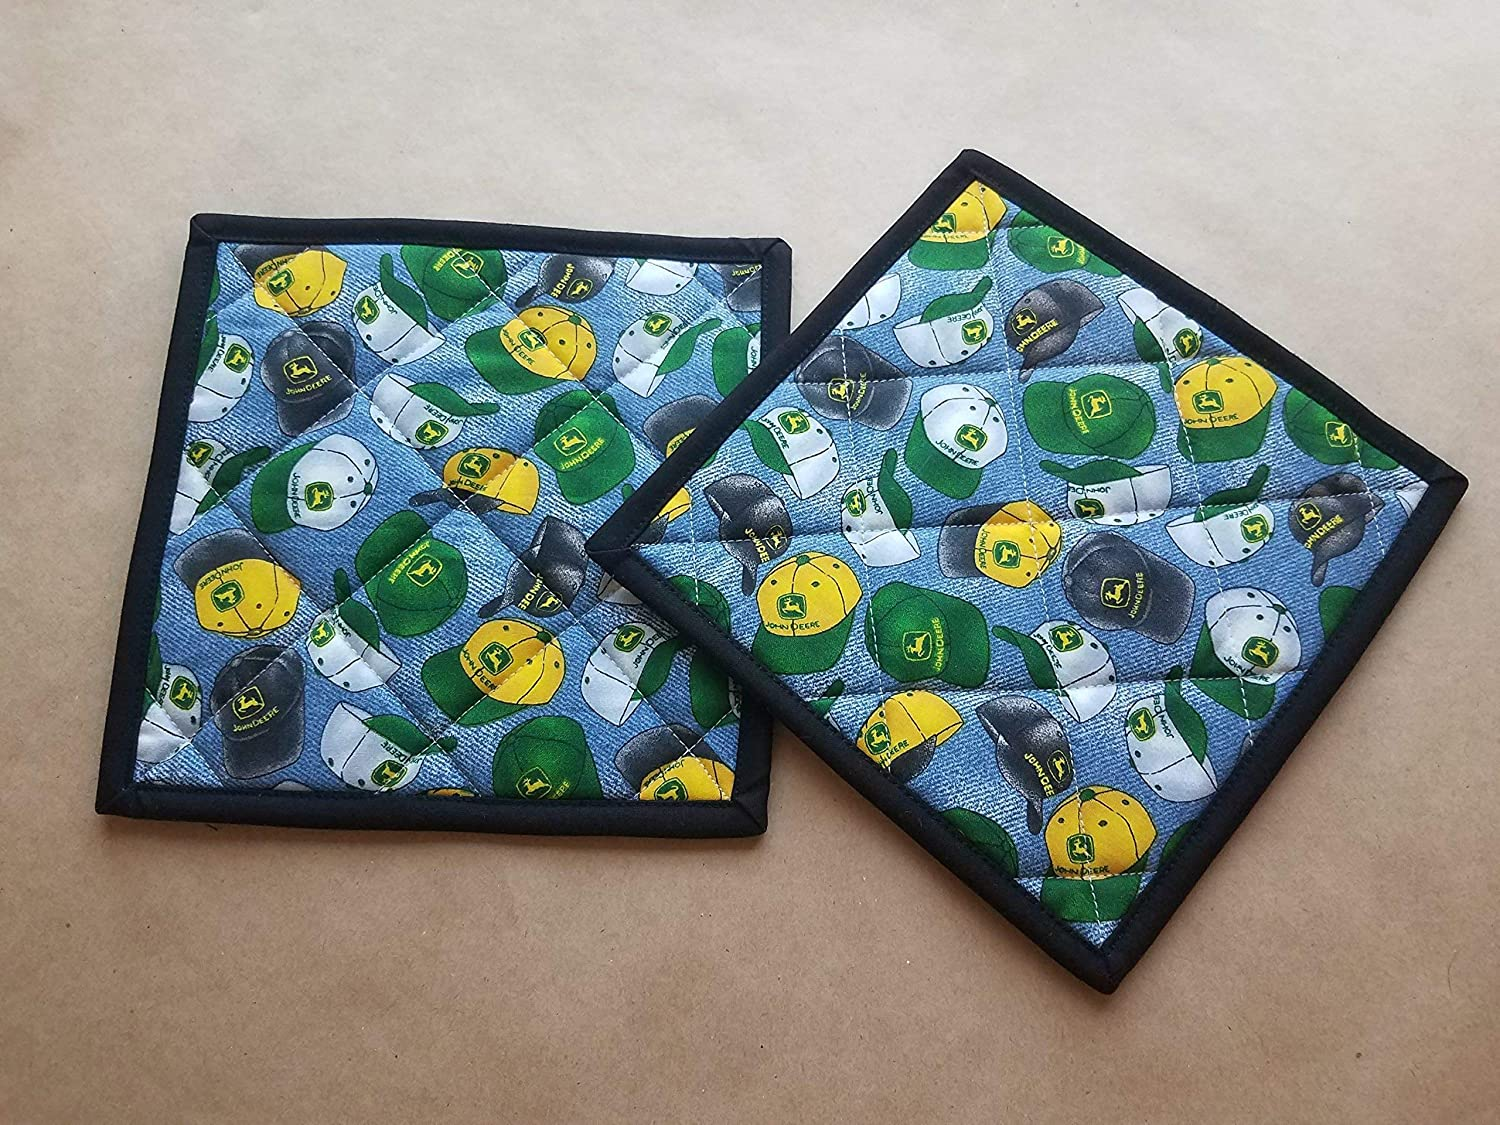 John Deere Trucker Hat Potholders, John Deere Home Decor, John Deer Hats, John Deere Hot Pads, Trivets, Pot Holders, John Deere Themed Gifts, Country Gifts, Farmhouse Kitchen Linens, Farmer Kitchen